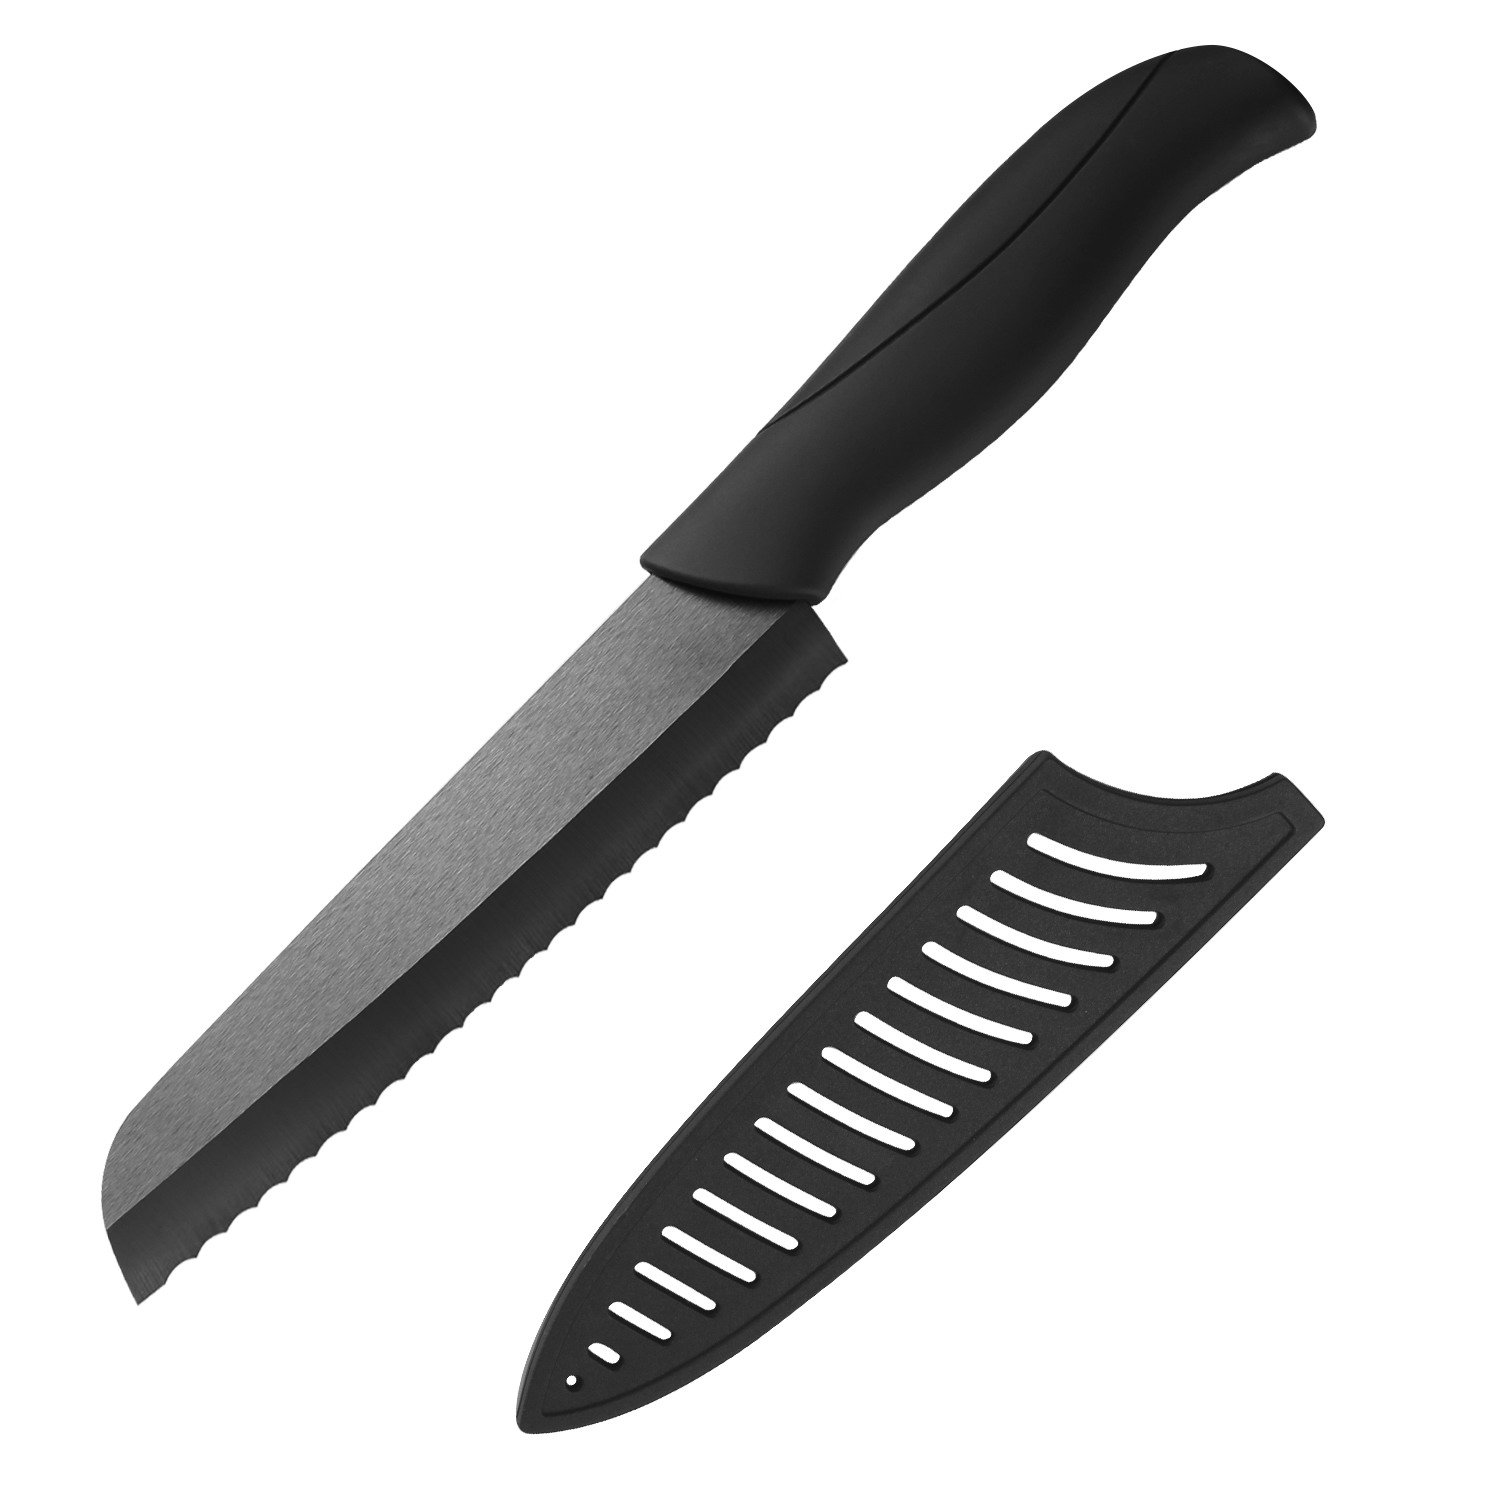 Serrated Ceramic 6'' Bread Knife- Non-Slip Rubberized Handles with Sheath Cover - Sharp Blade, Eco Friendly